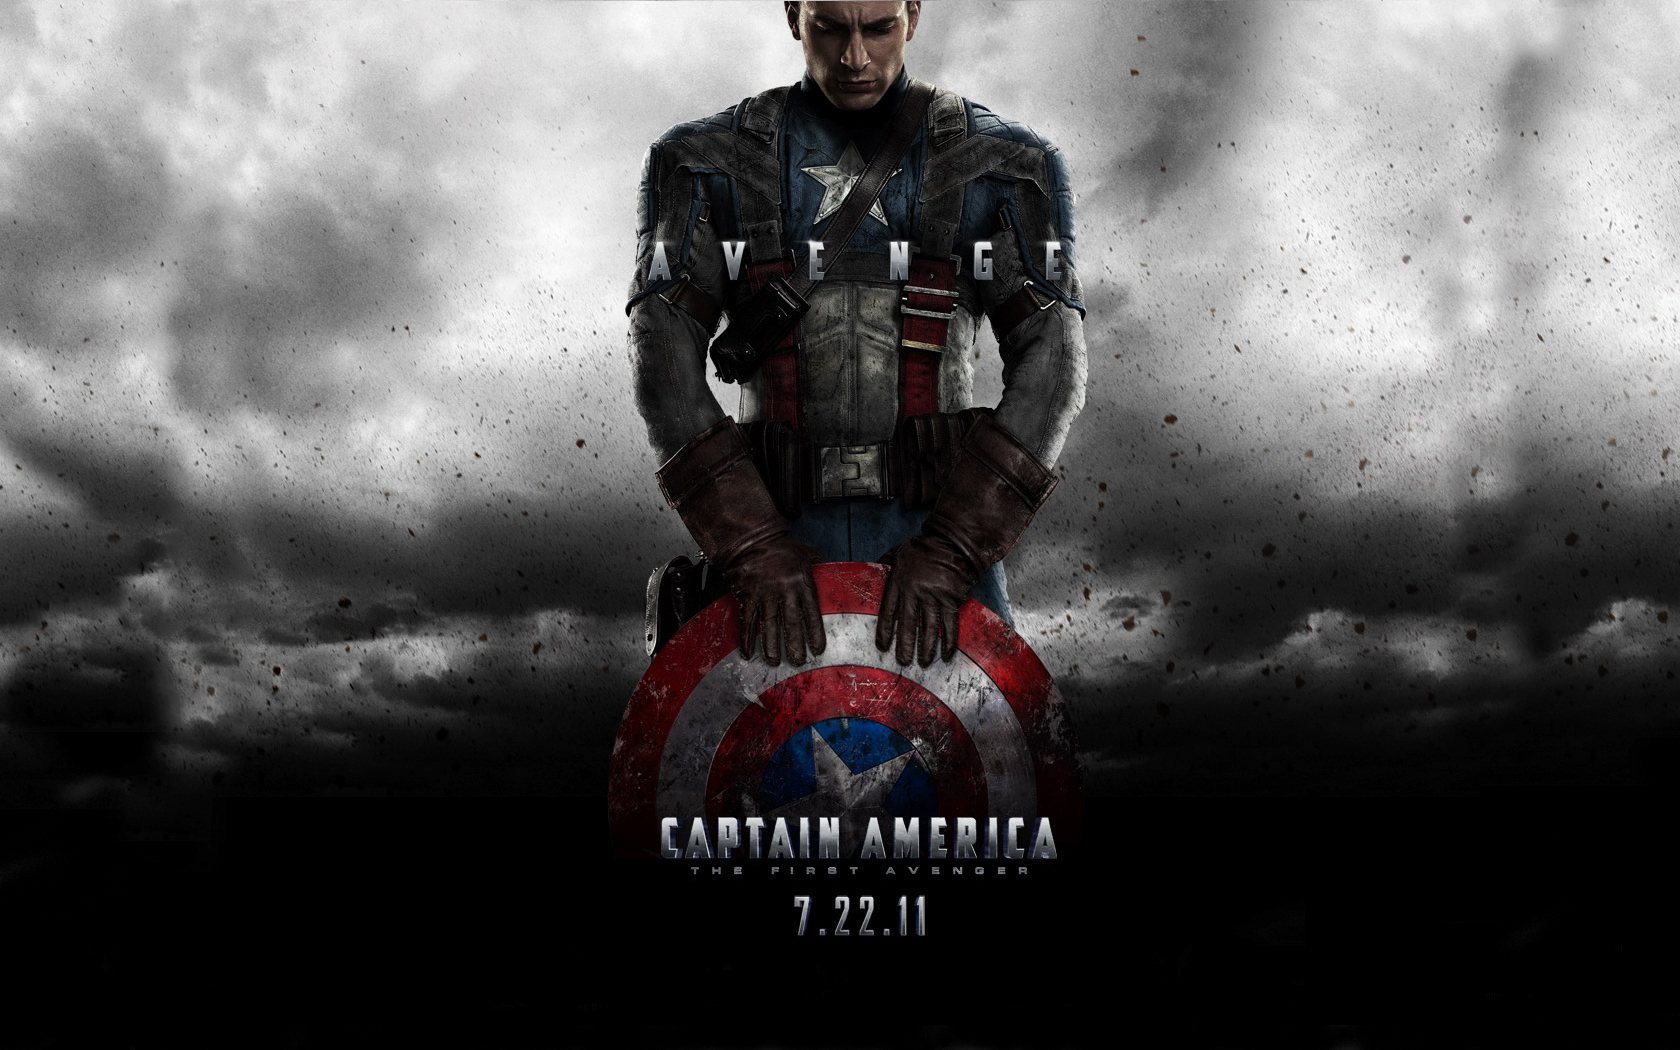 Hd wallpaper of captain america - Captain America First Avenger Wallpapers Hd Wallpapers